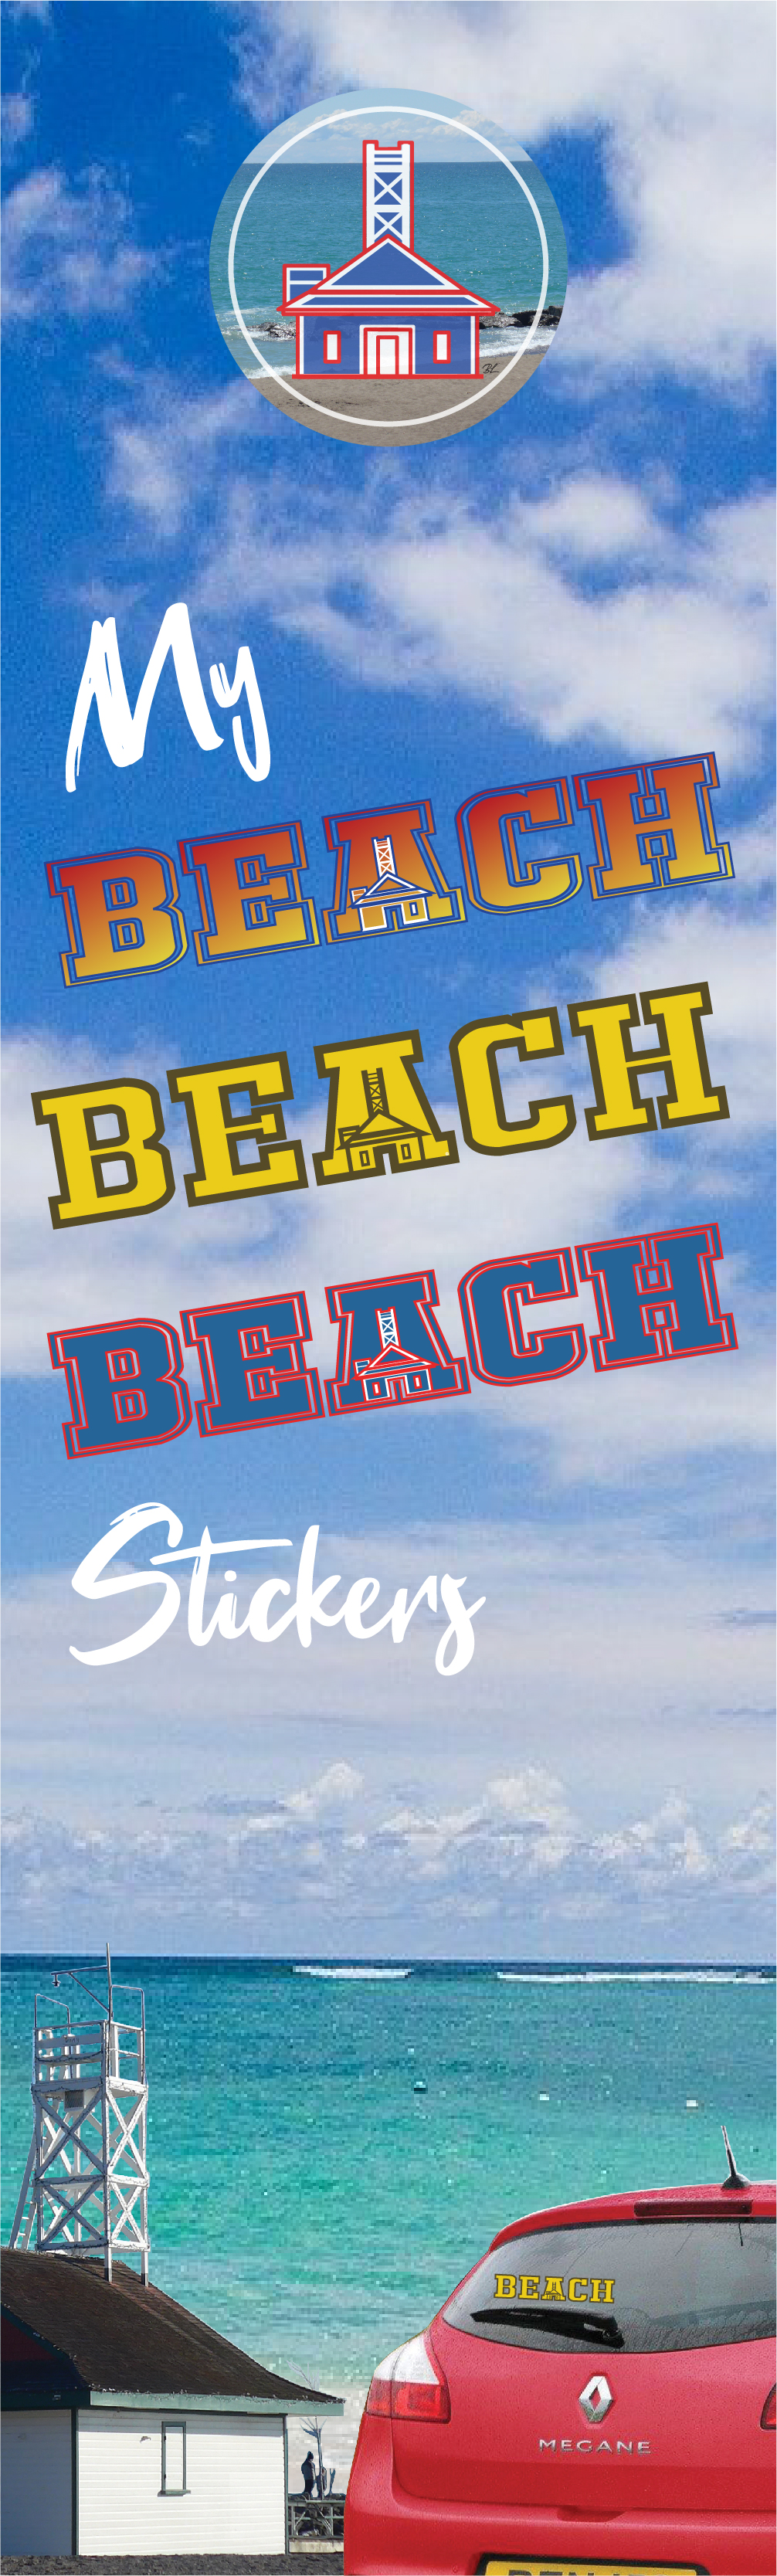 BEACH Sticker Banner